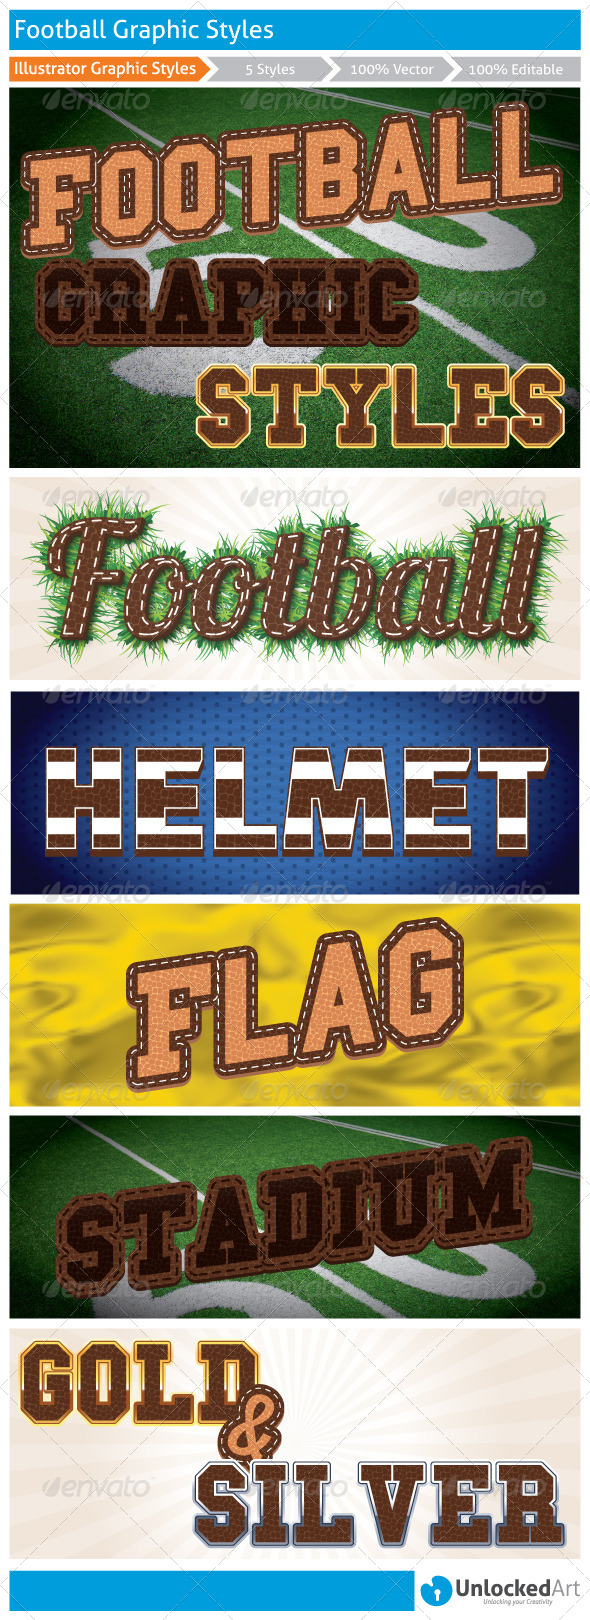 GraphicRiver Football Graphic Styles 8371722